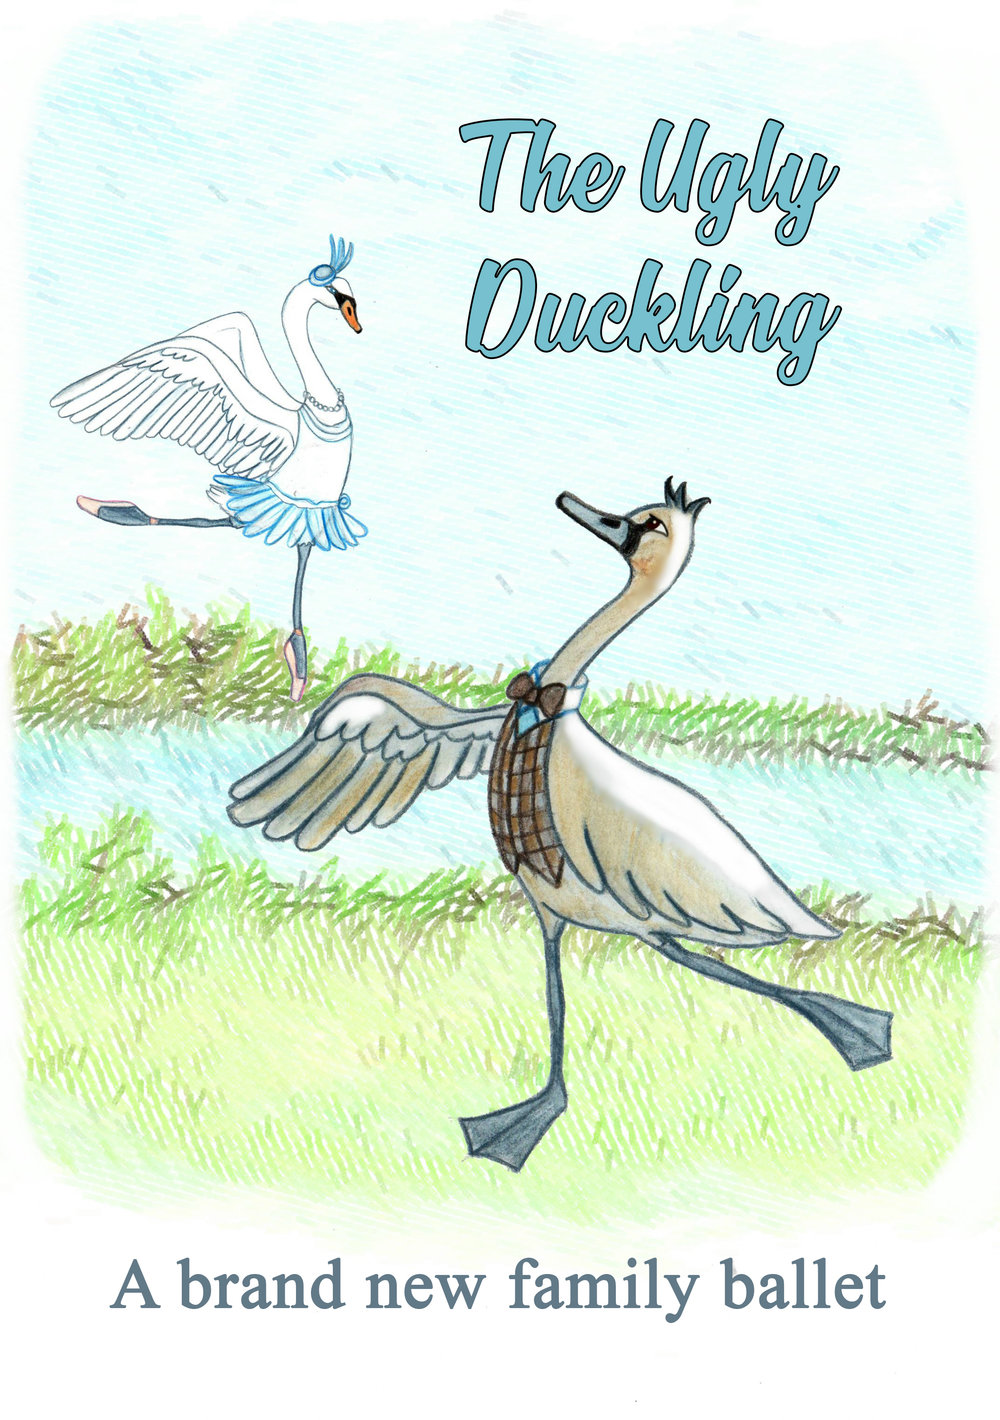 Ugly Duckling image with text.jpg